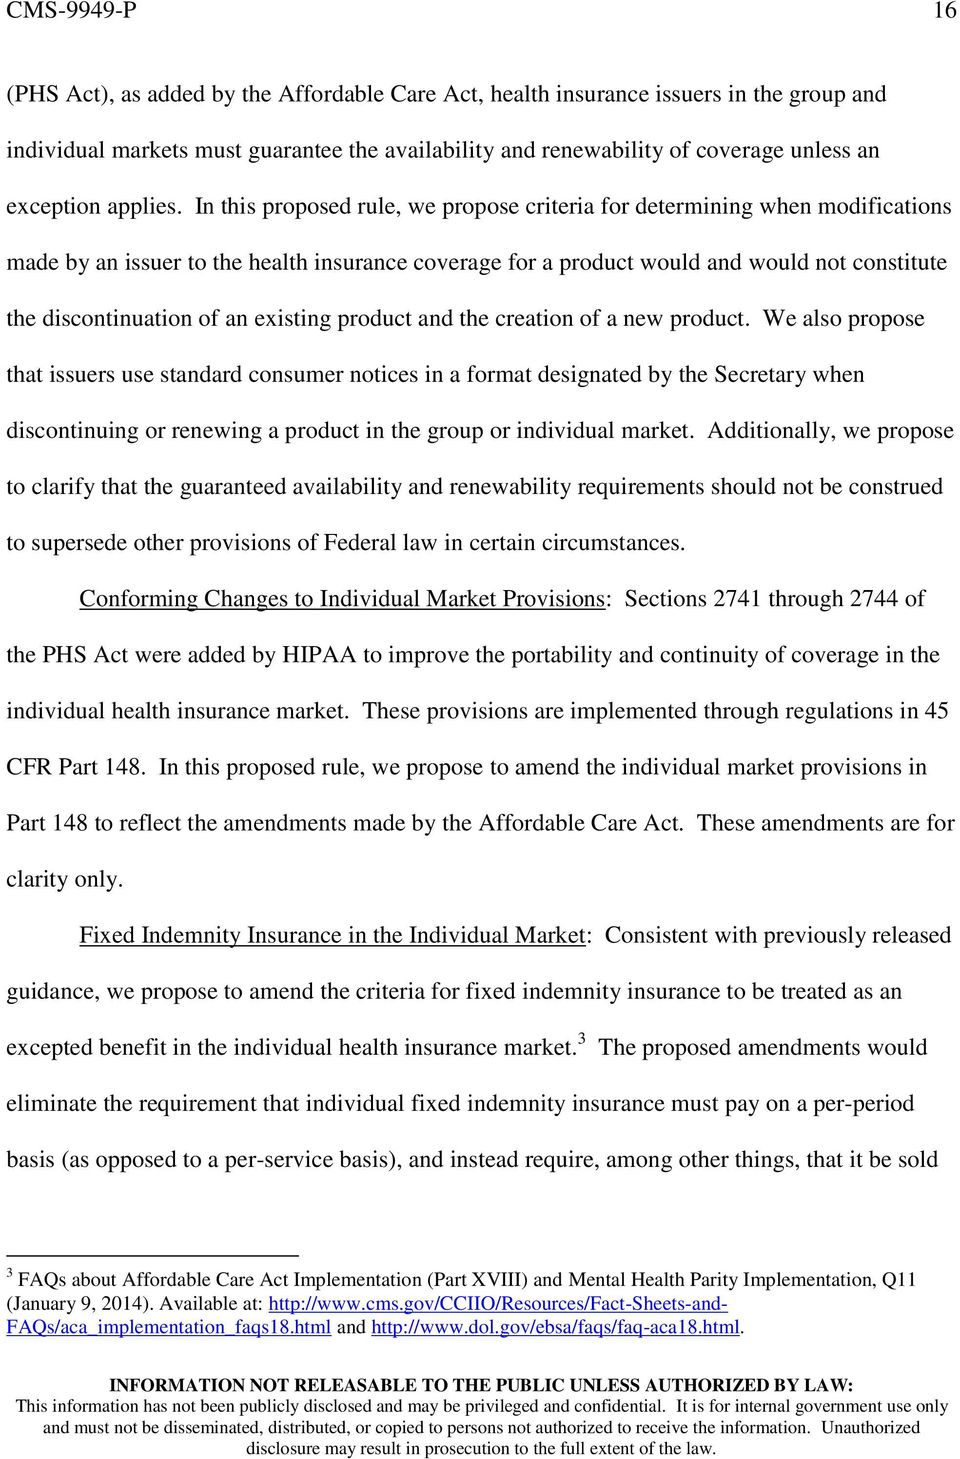 In this proposed rule, we propose criteria for determining when modifications made by an issuer to the health insurance coverage for a product would and would not constitute the discontinuation of an